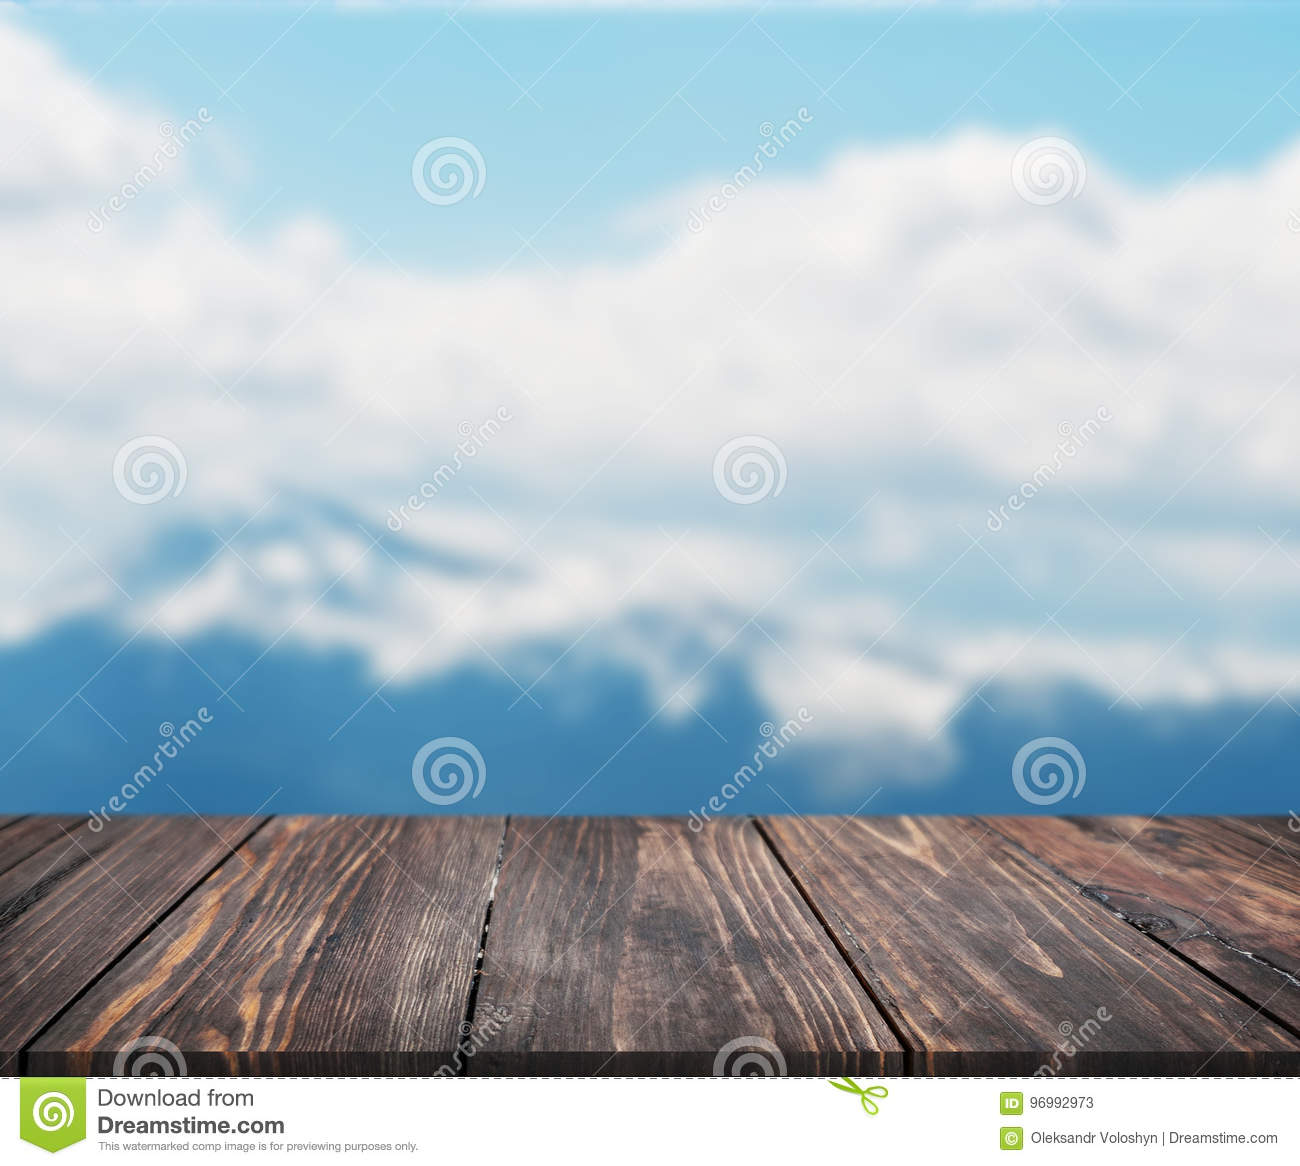 Image of wooden table in front of abstract blurred background of mountain. can be used for display or montage your products. Mock